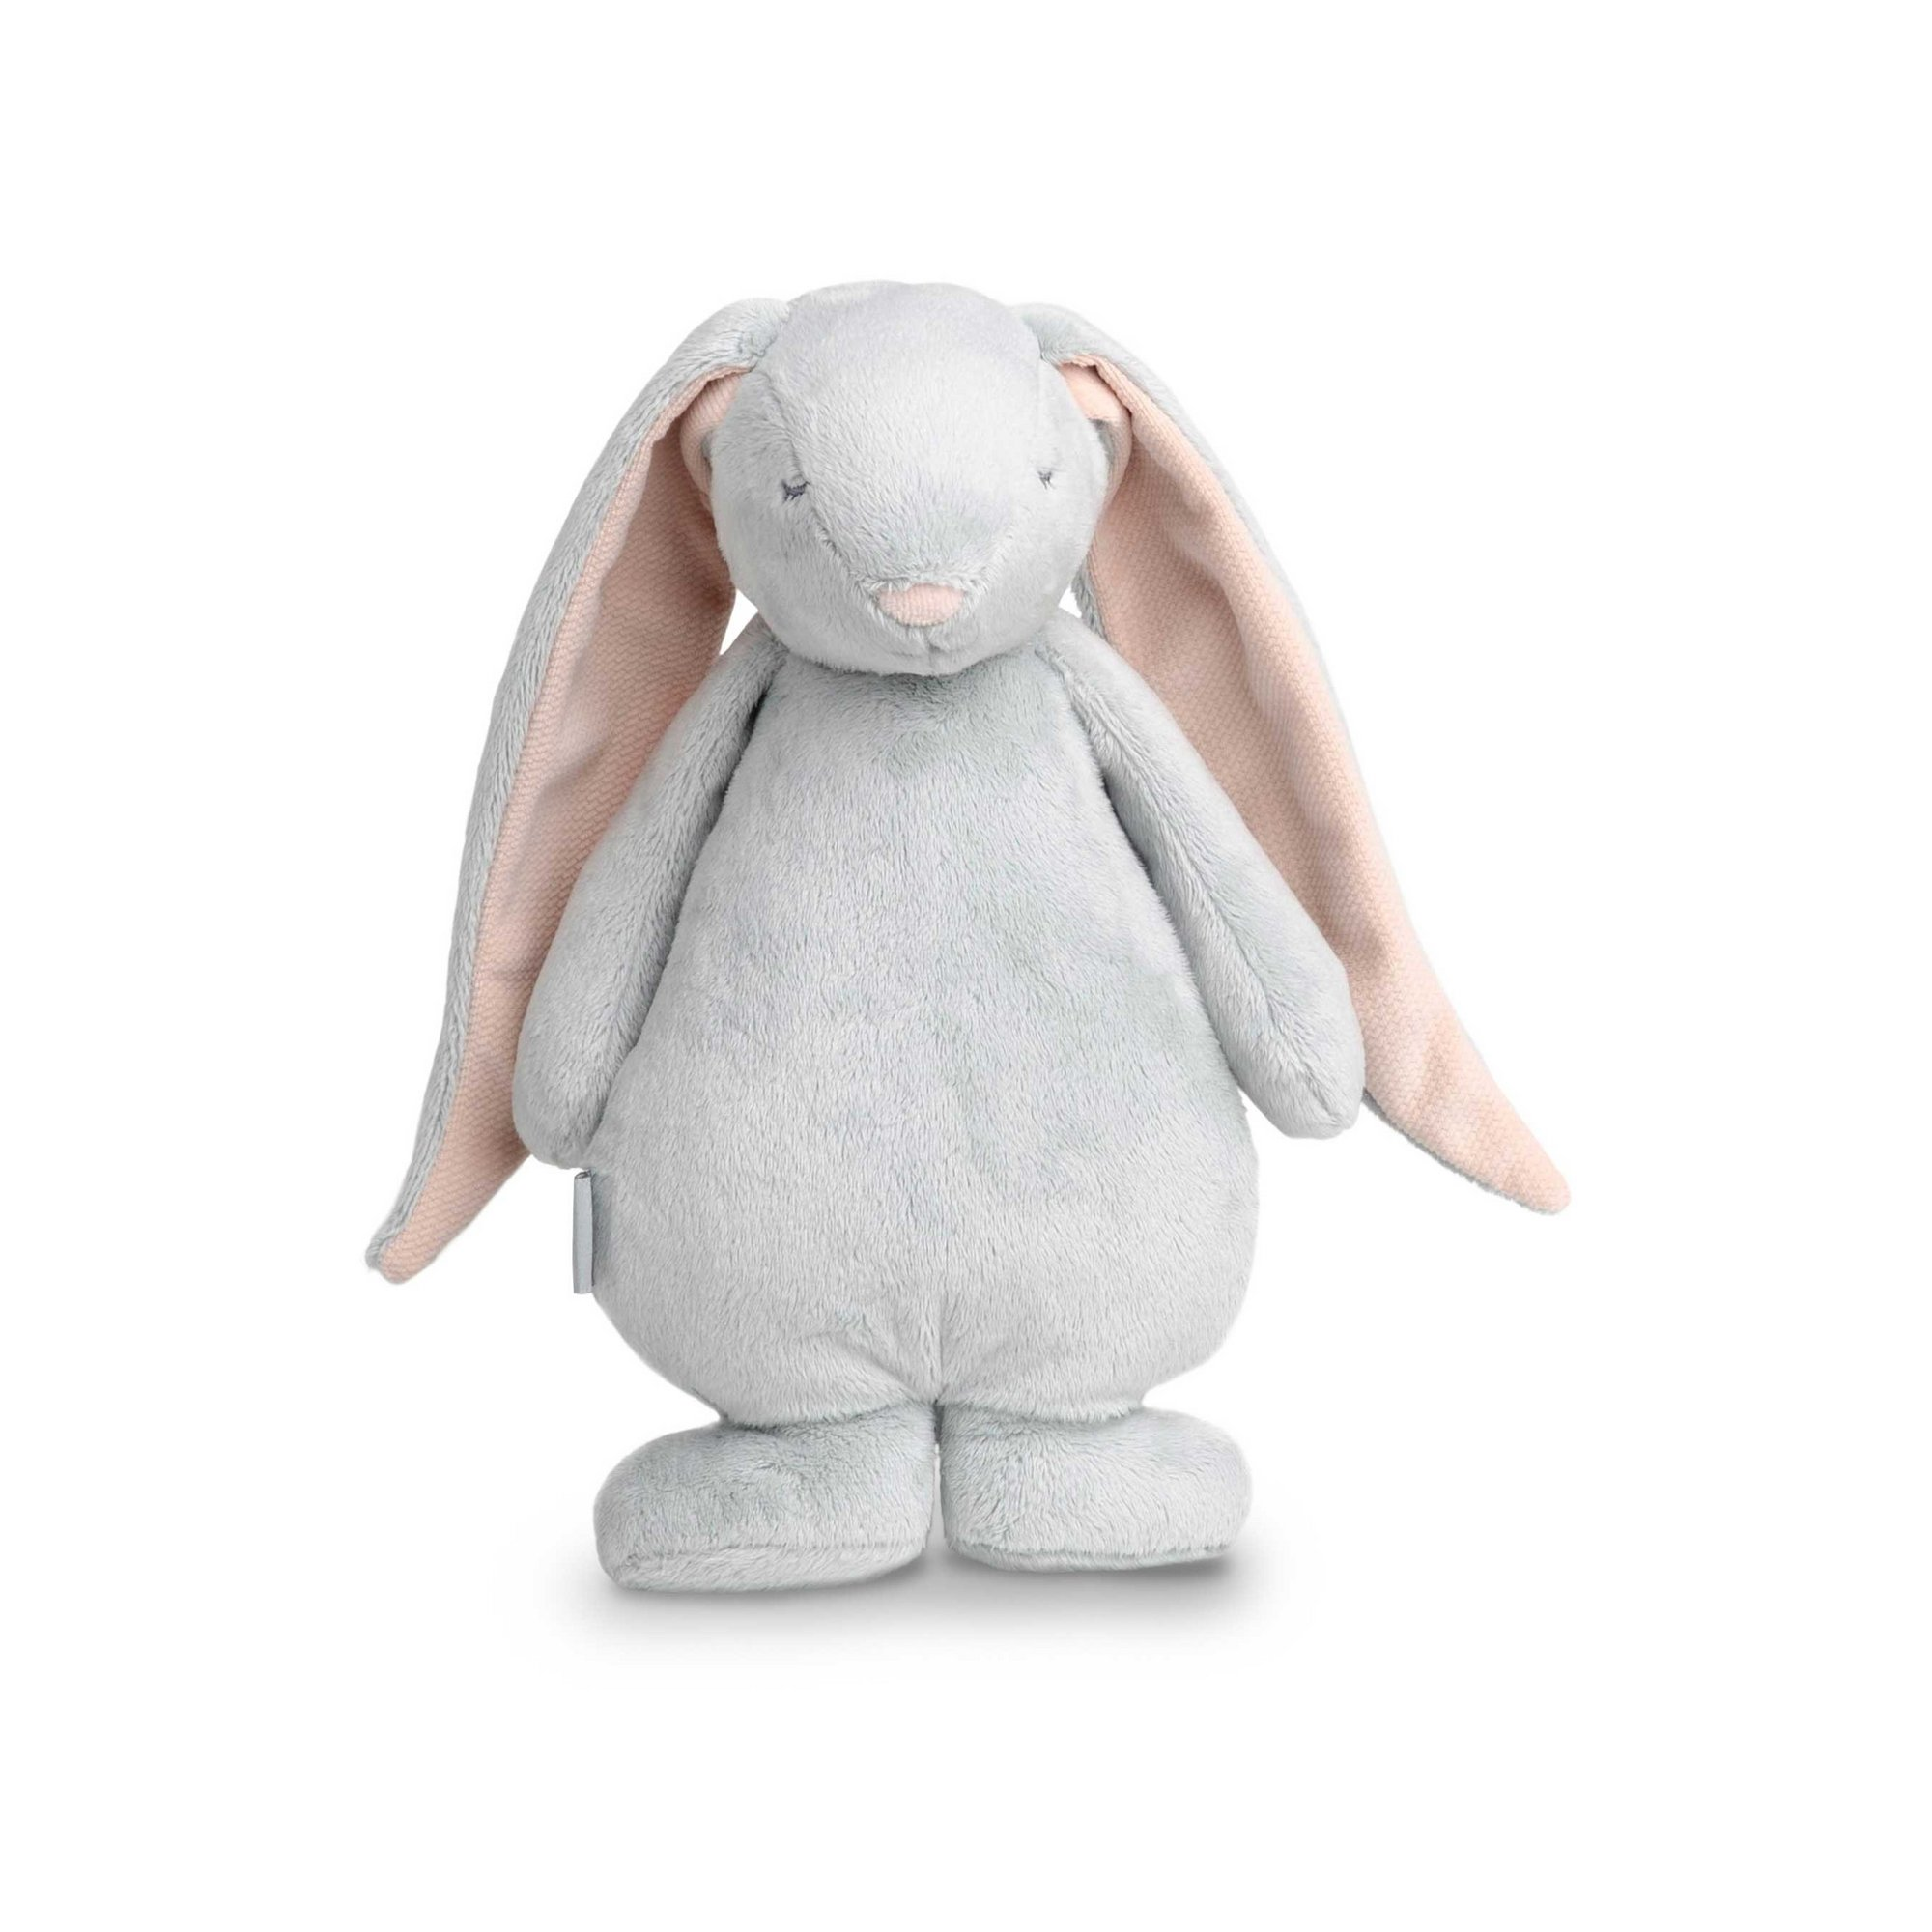 Image of Moonie Humming Friend Baby Nightlight